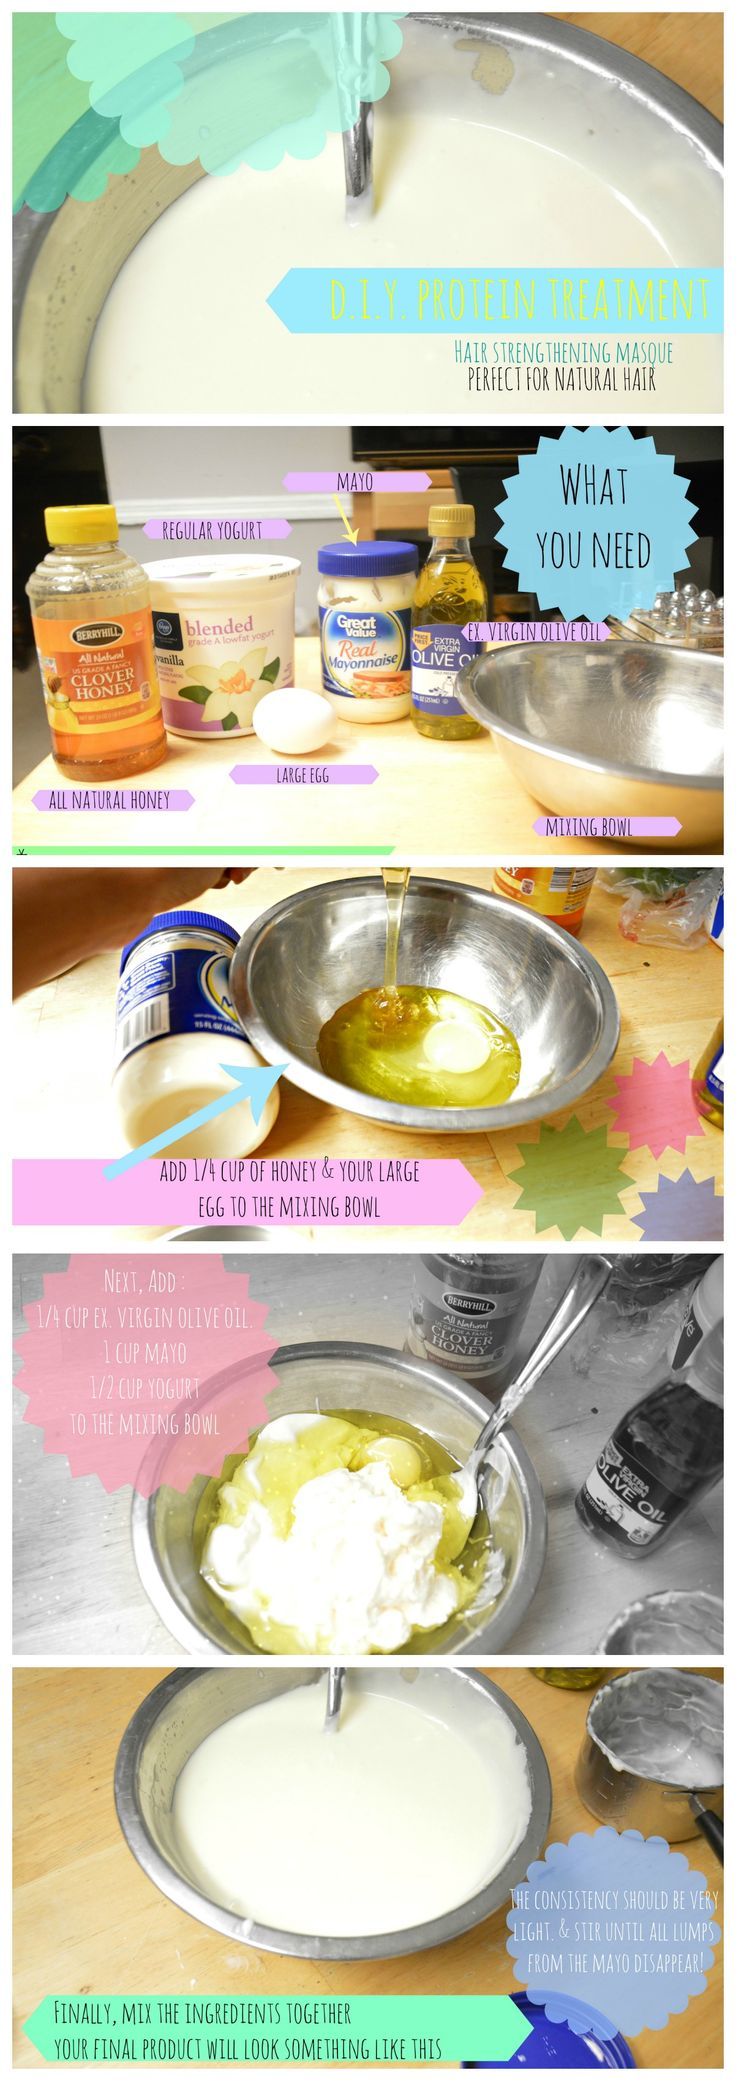 DIY, Homemade Natural Hair Protein Treatment Perfect for dry, brittle hair and those experiencing breakage. All ingredients used can most likely be found in your kitchen. More information at: http://naturallykoily.blogspot.com/2015/01/protein-treatments-are-often-used-to.html